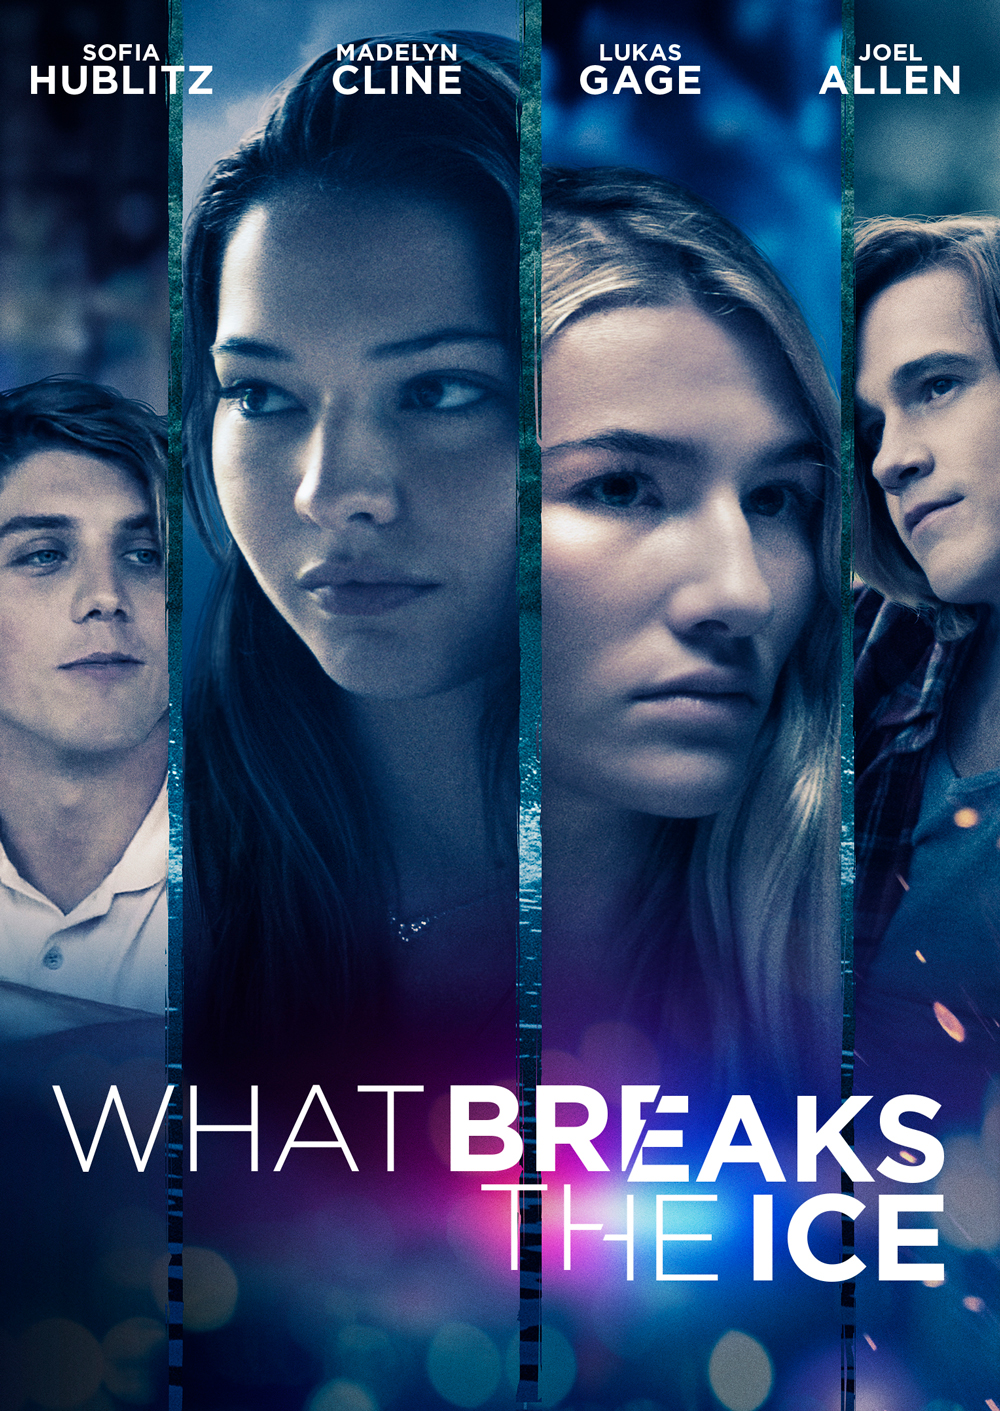 What Breaks the Ice (2020) Full Movie [In English] With Hindi Subtitles | WebRip 720p [1XBET]